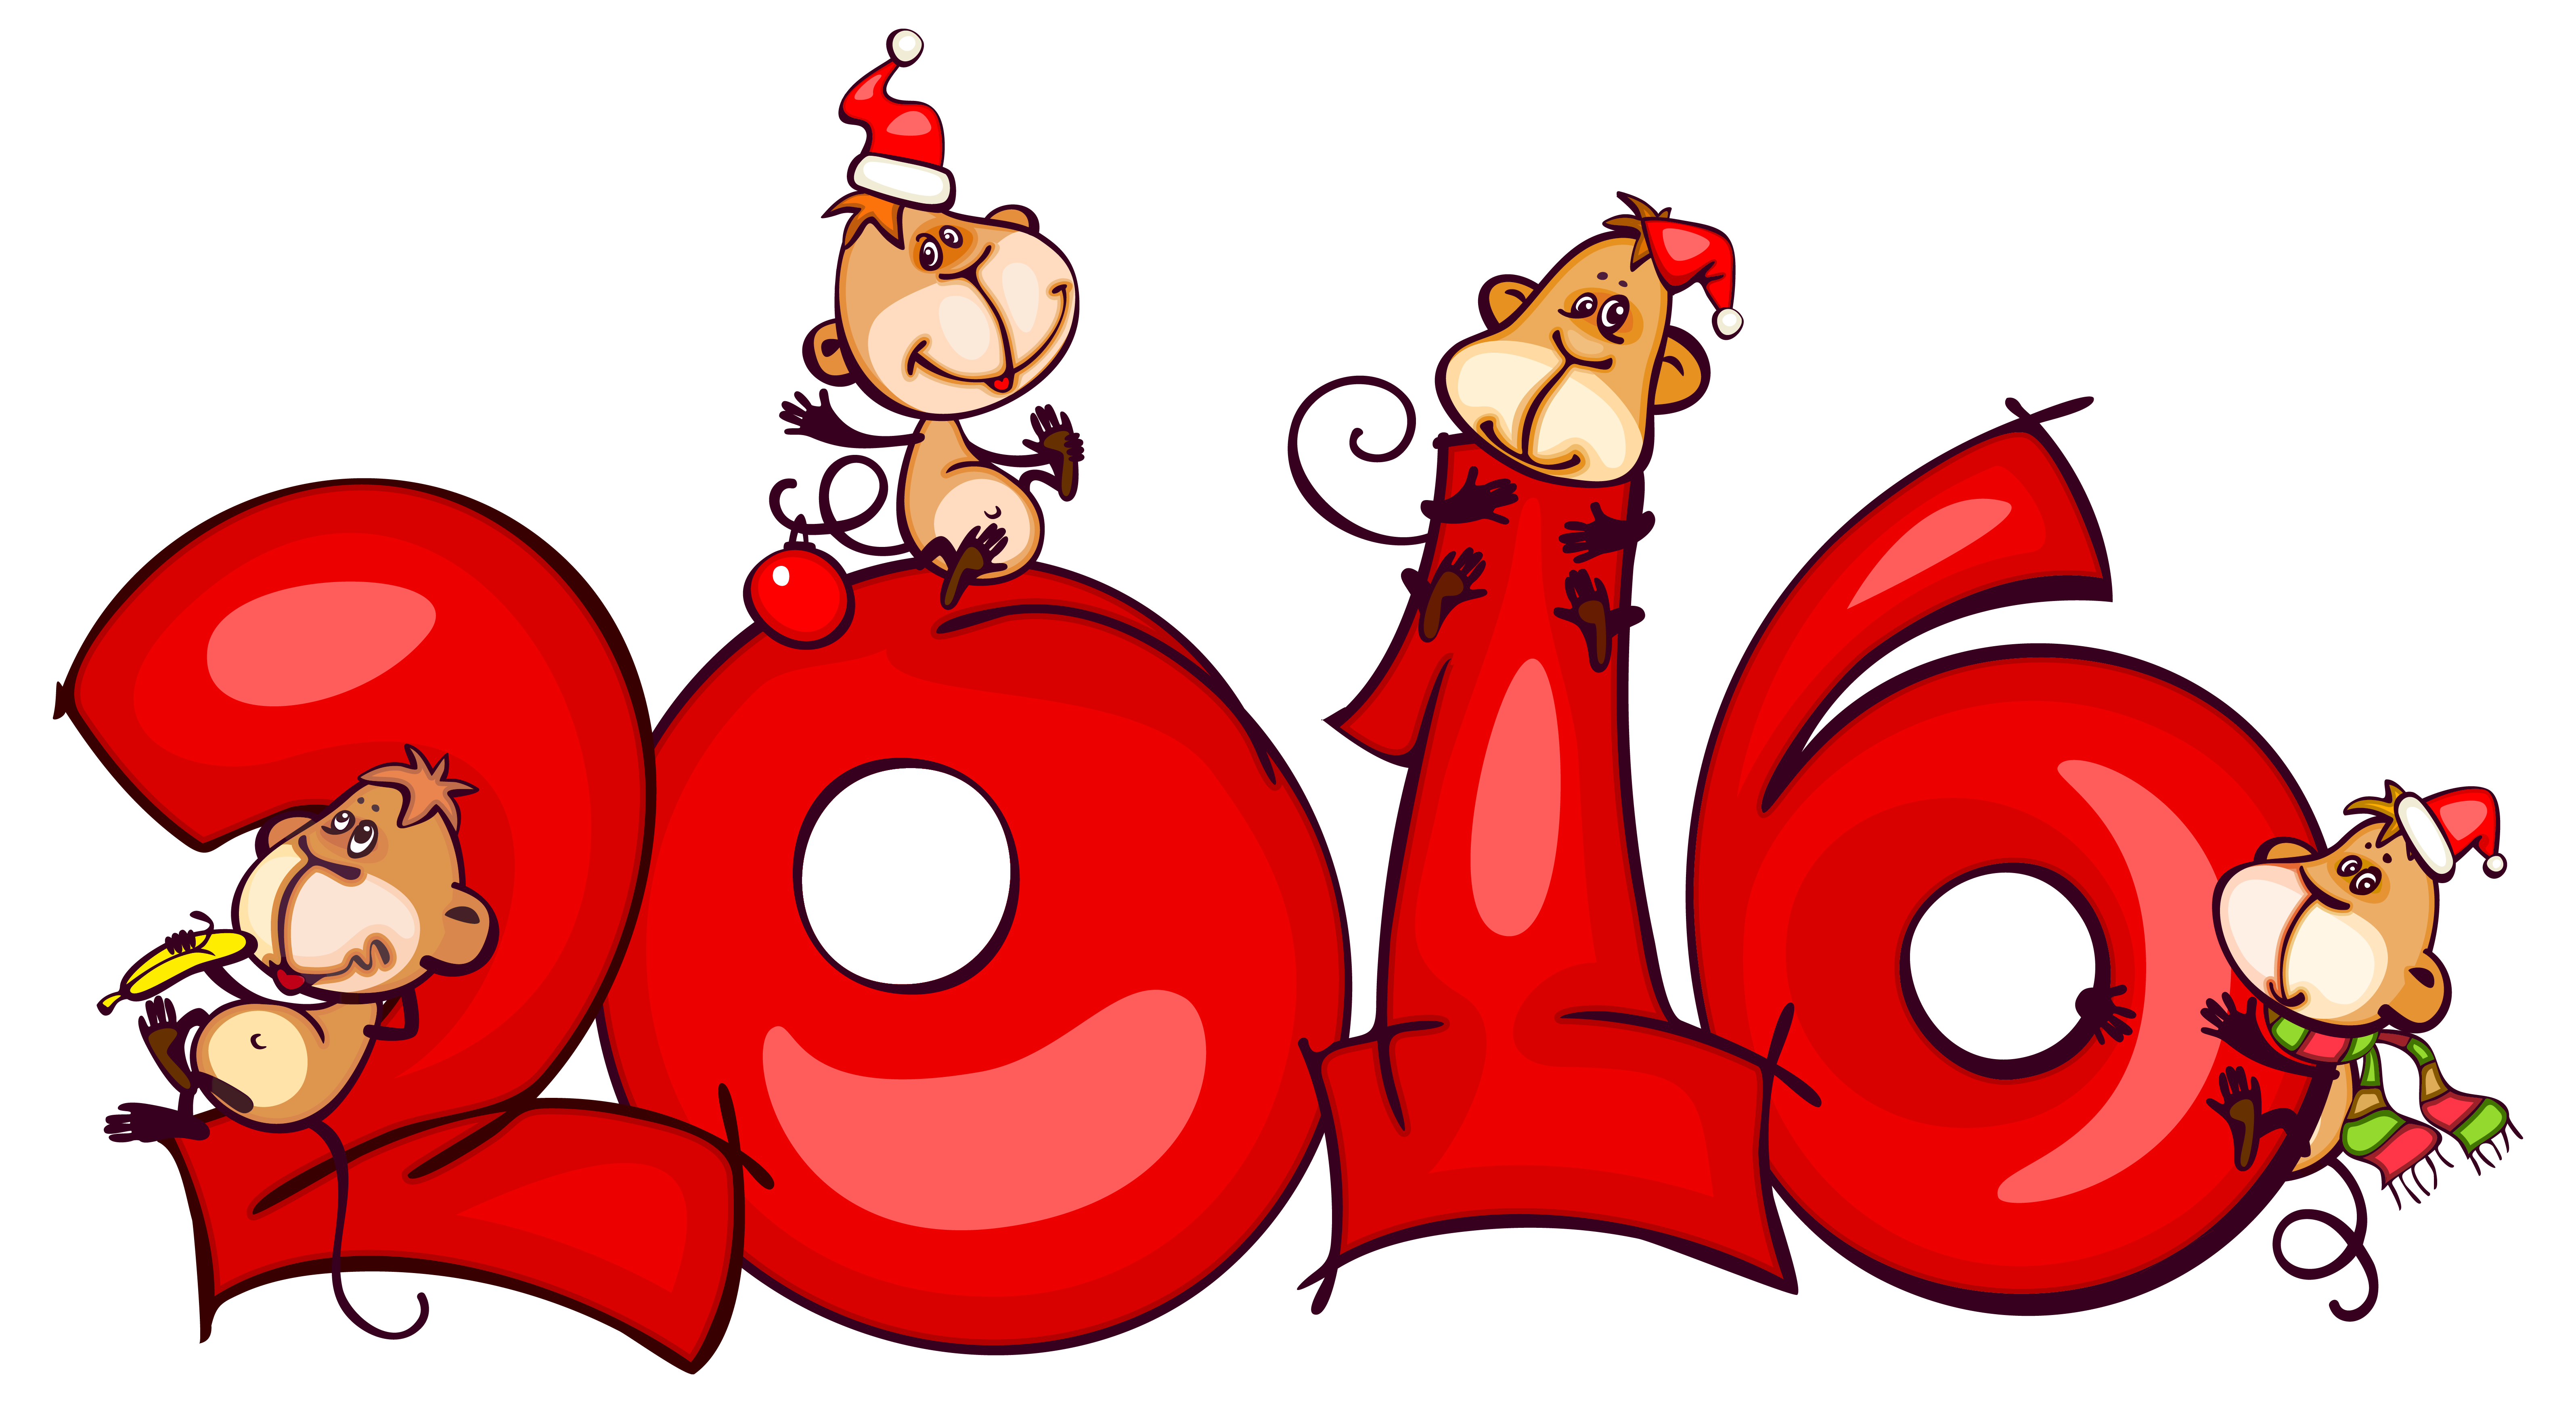 2016 with Monkeys PNG Clipart Image.